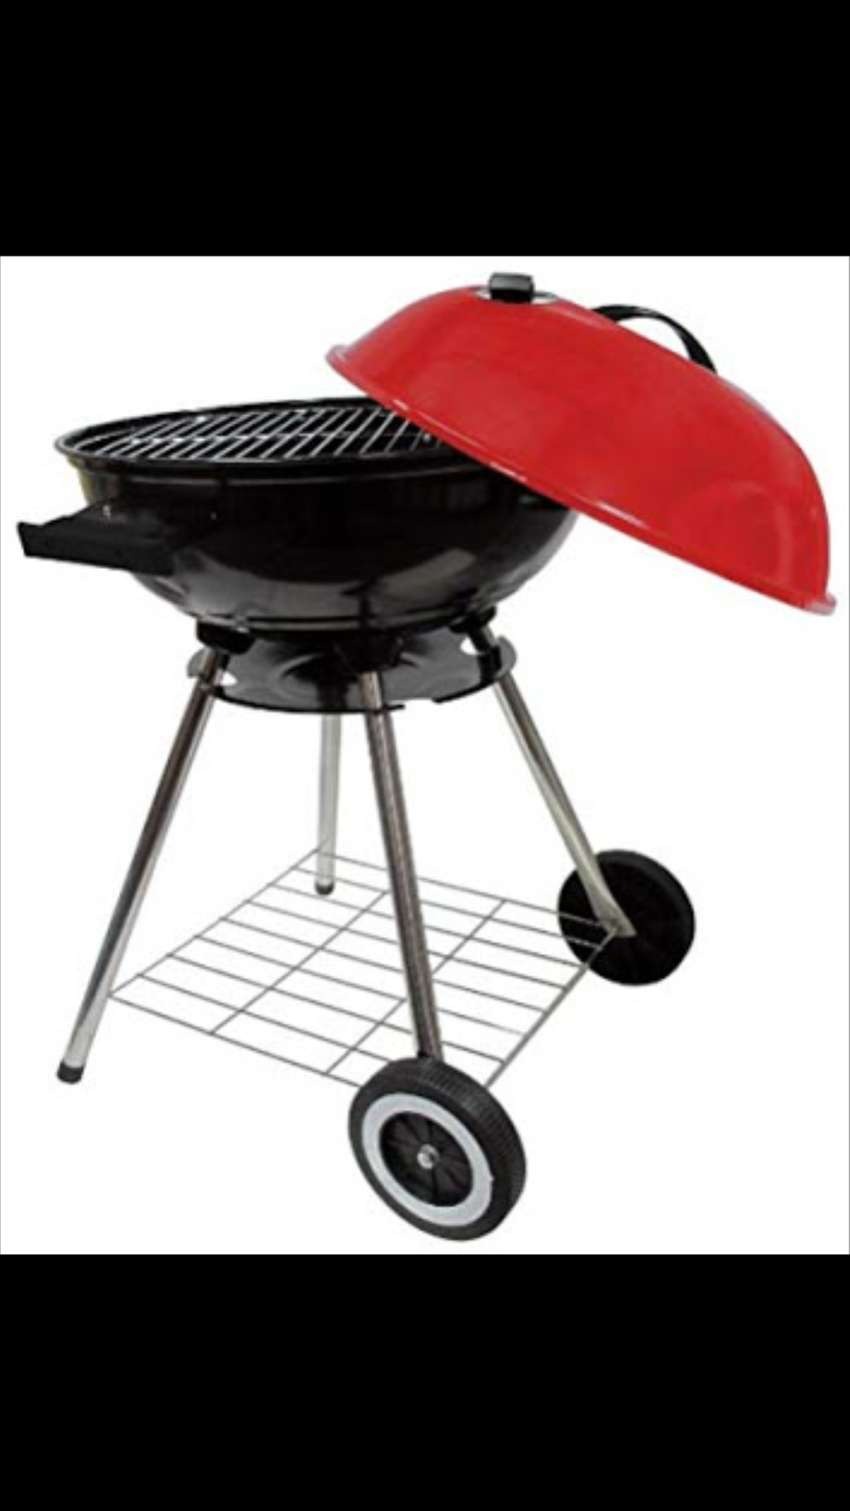 barbeque grill 0